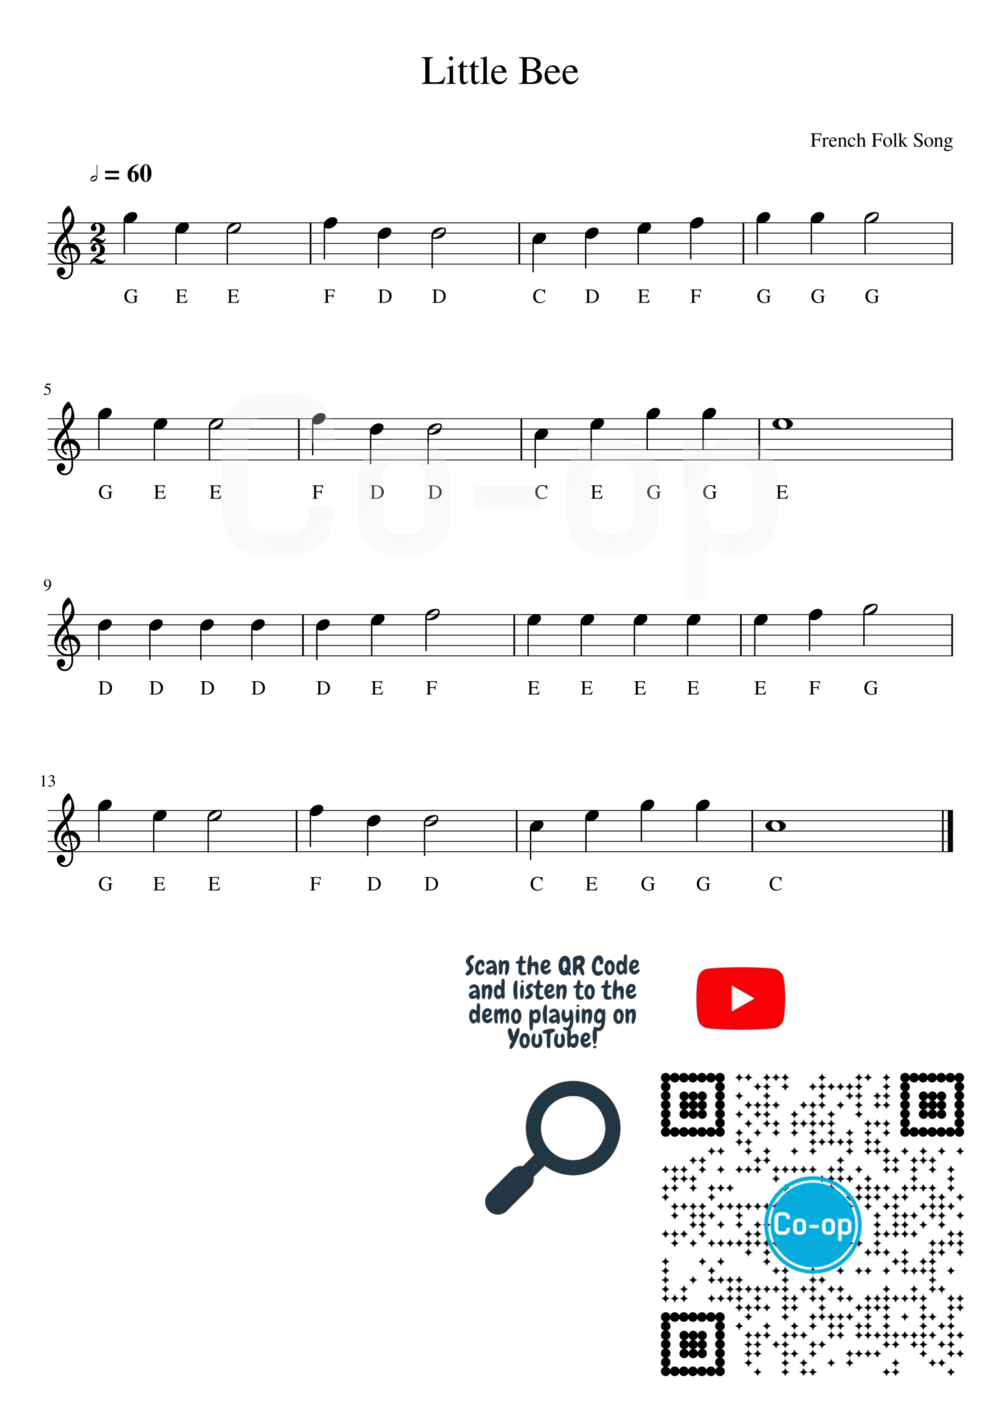 Little Bee | Letter Notation | Free Sheet Music